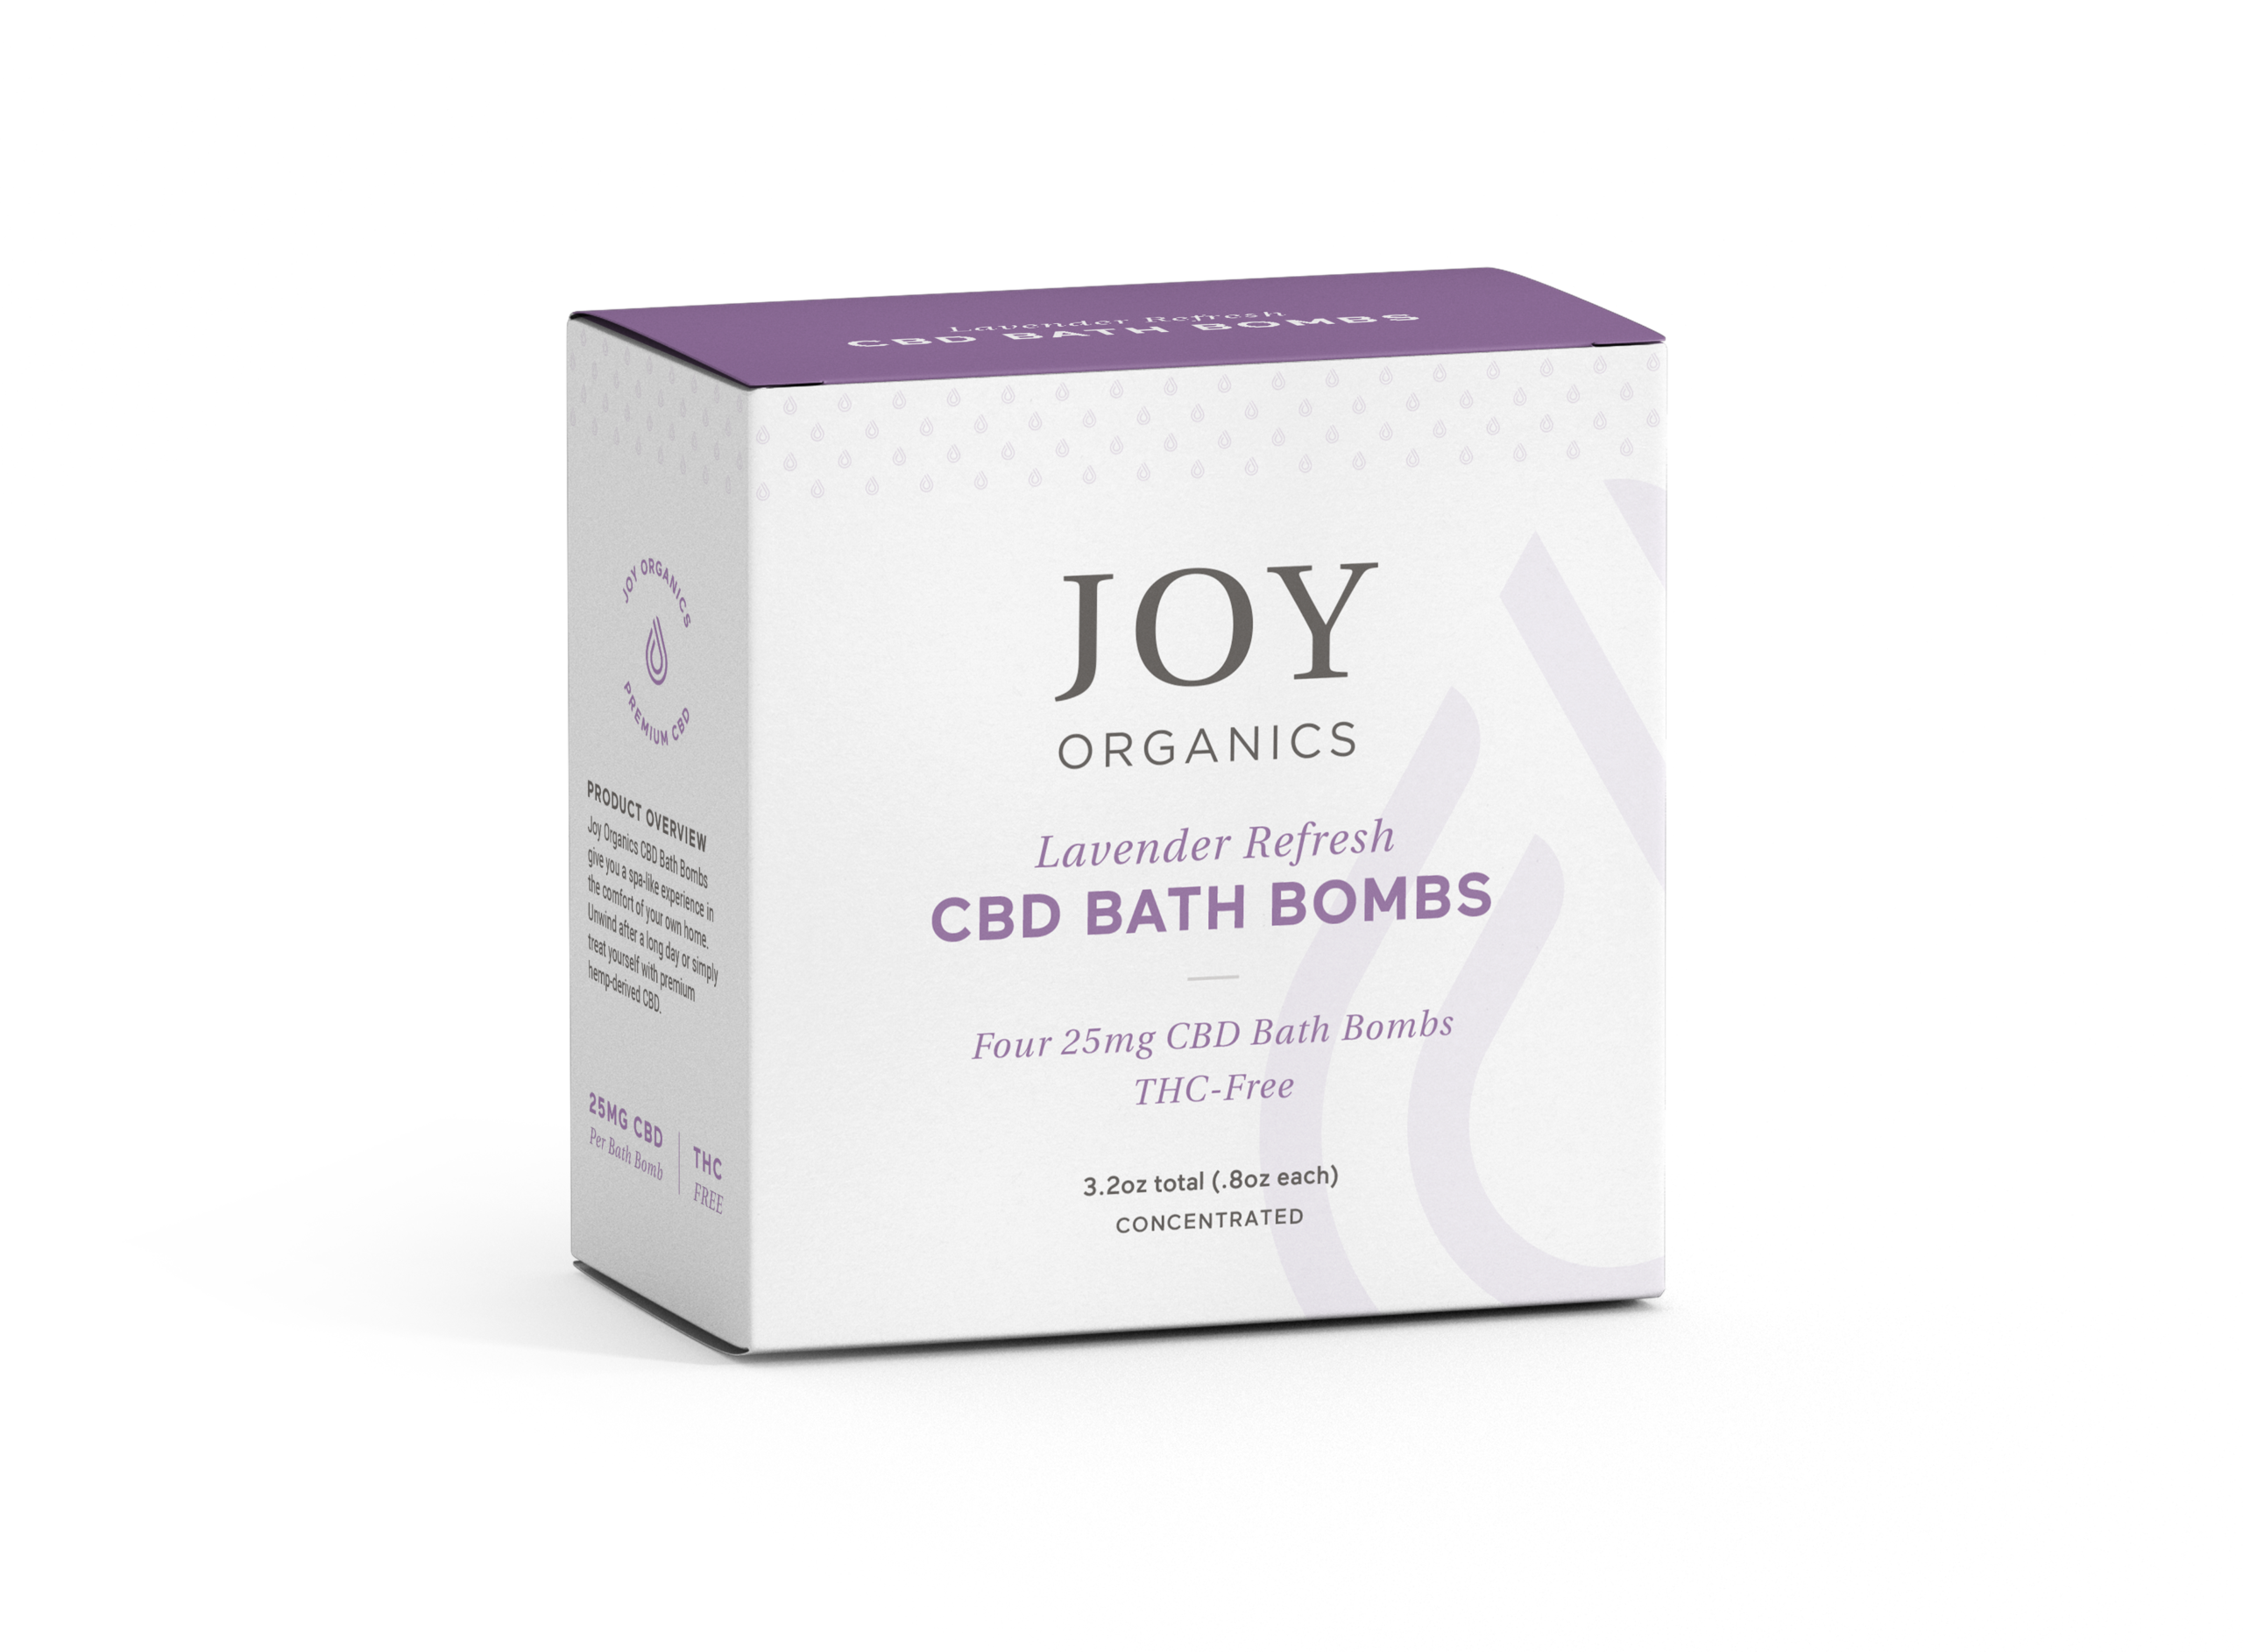 joy organics CBD bath bomb box 300